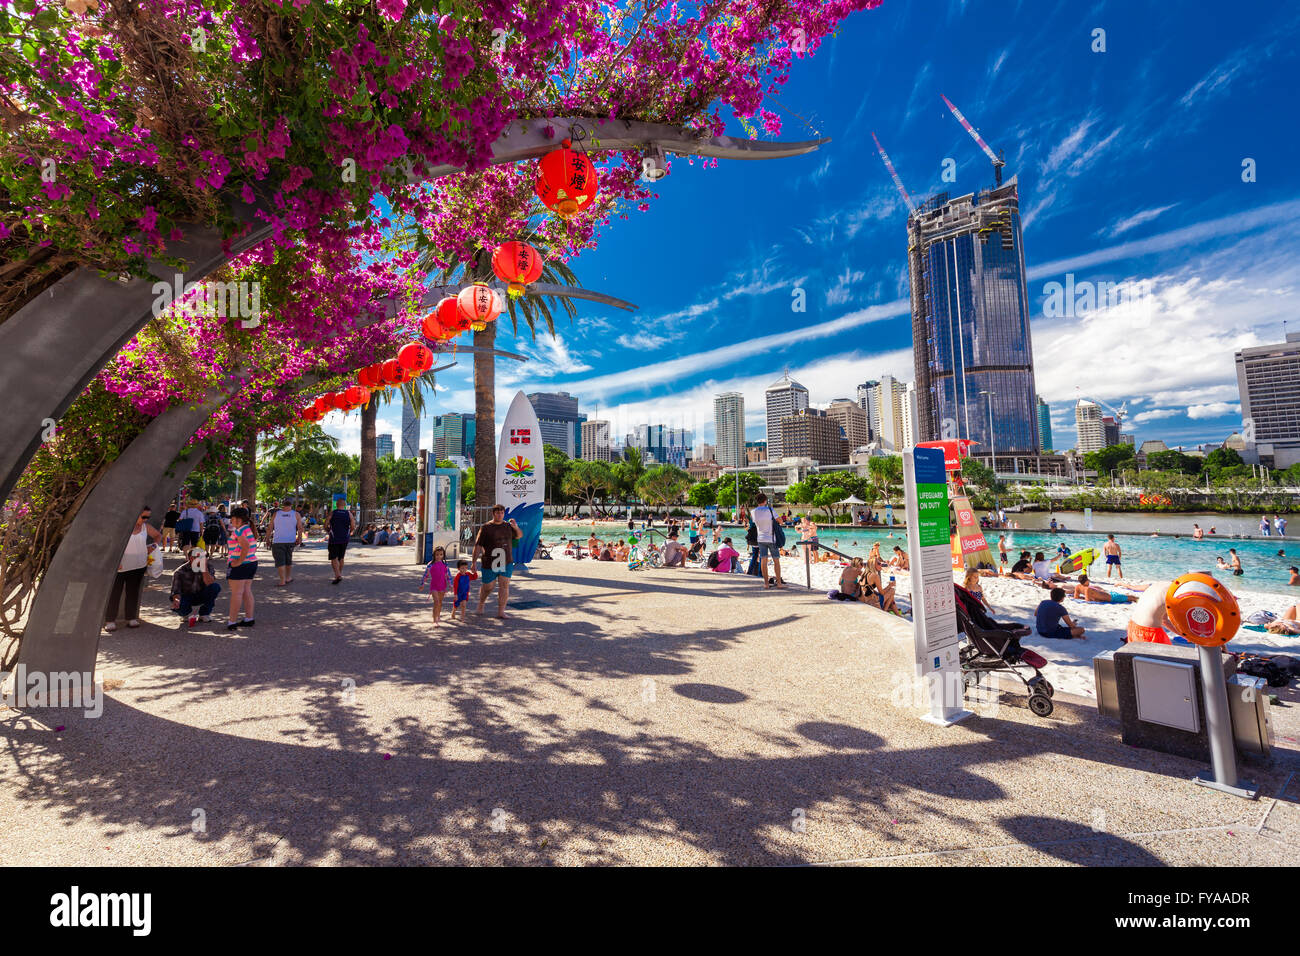 BRISBANE, AUS - APRIL 17 2016: Streets Beach in South Bank Parkland. It's inner-city man-made beach next to - Stock Image